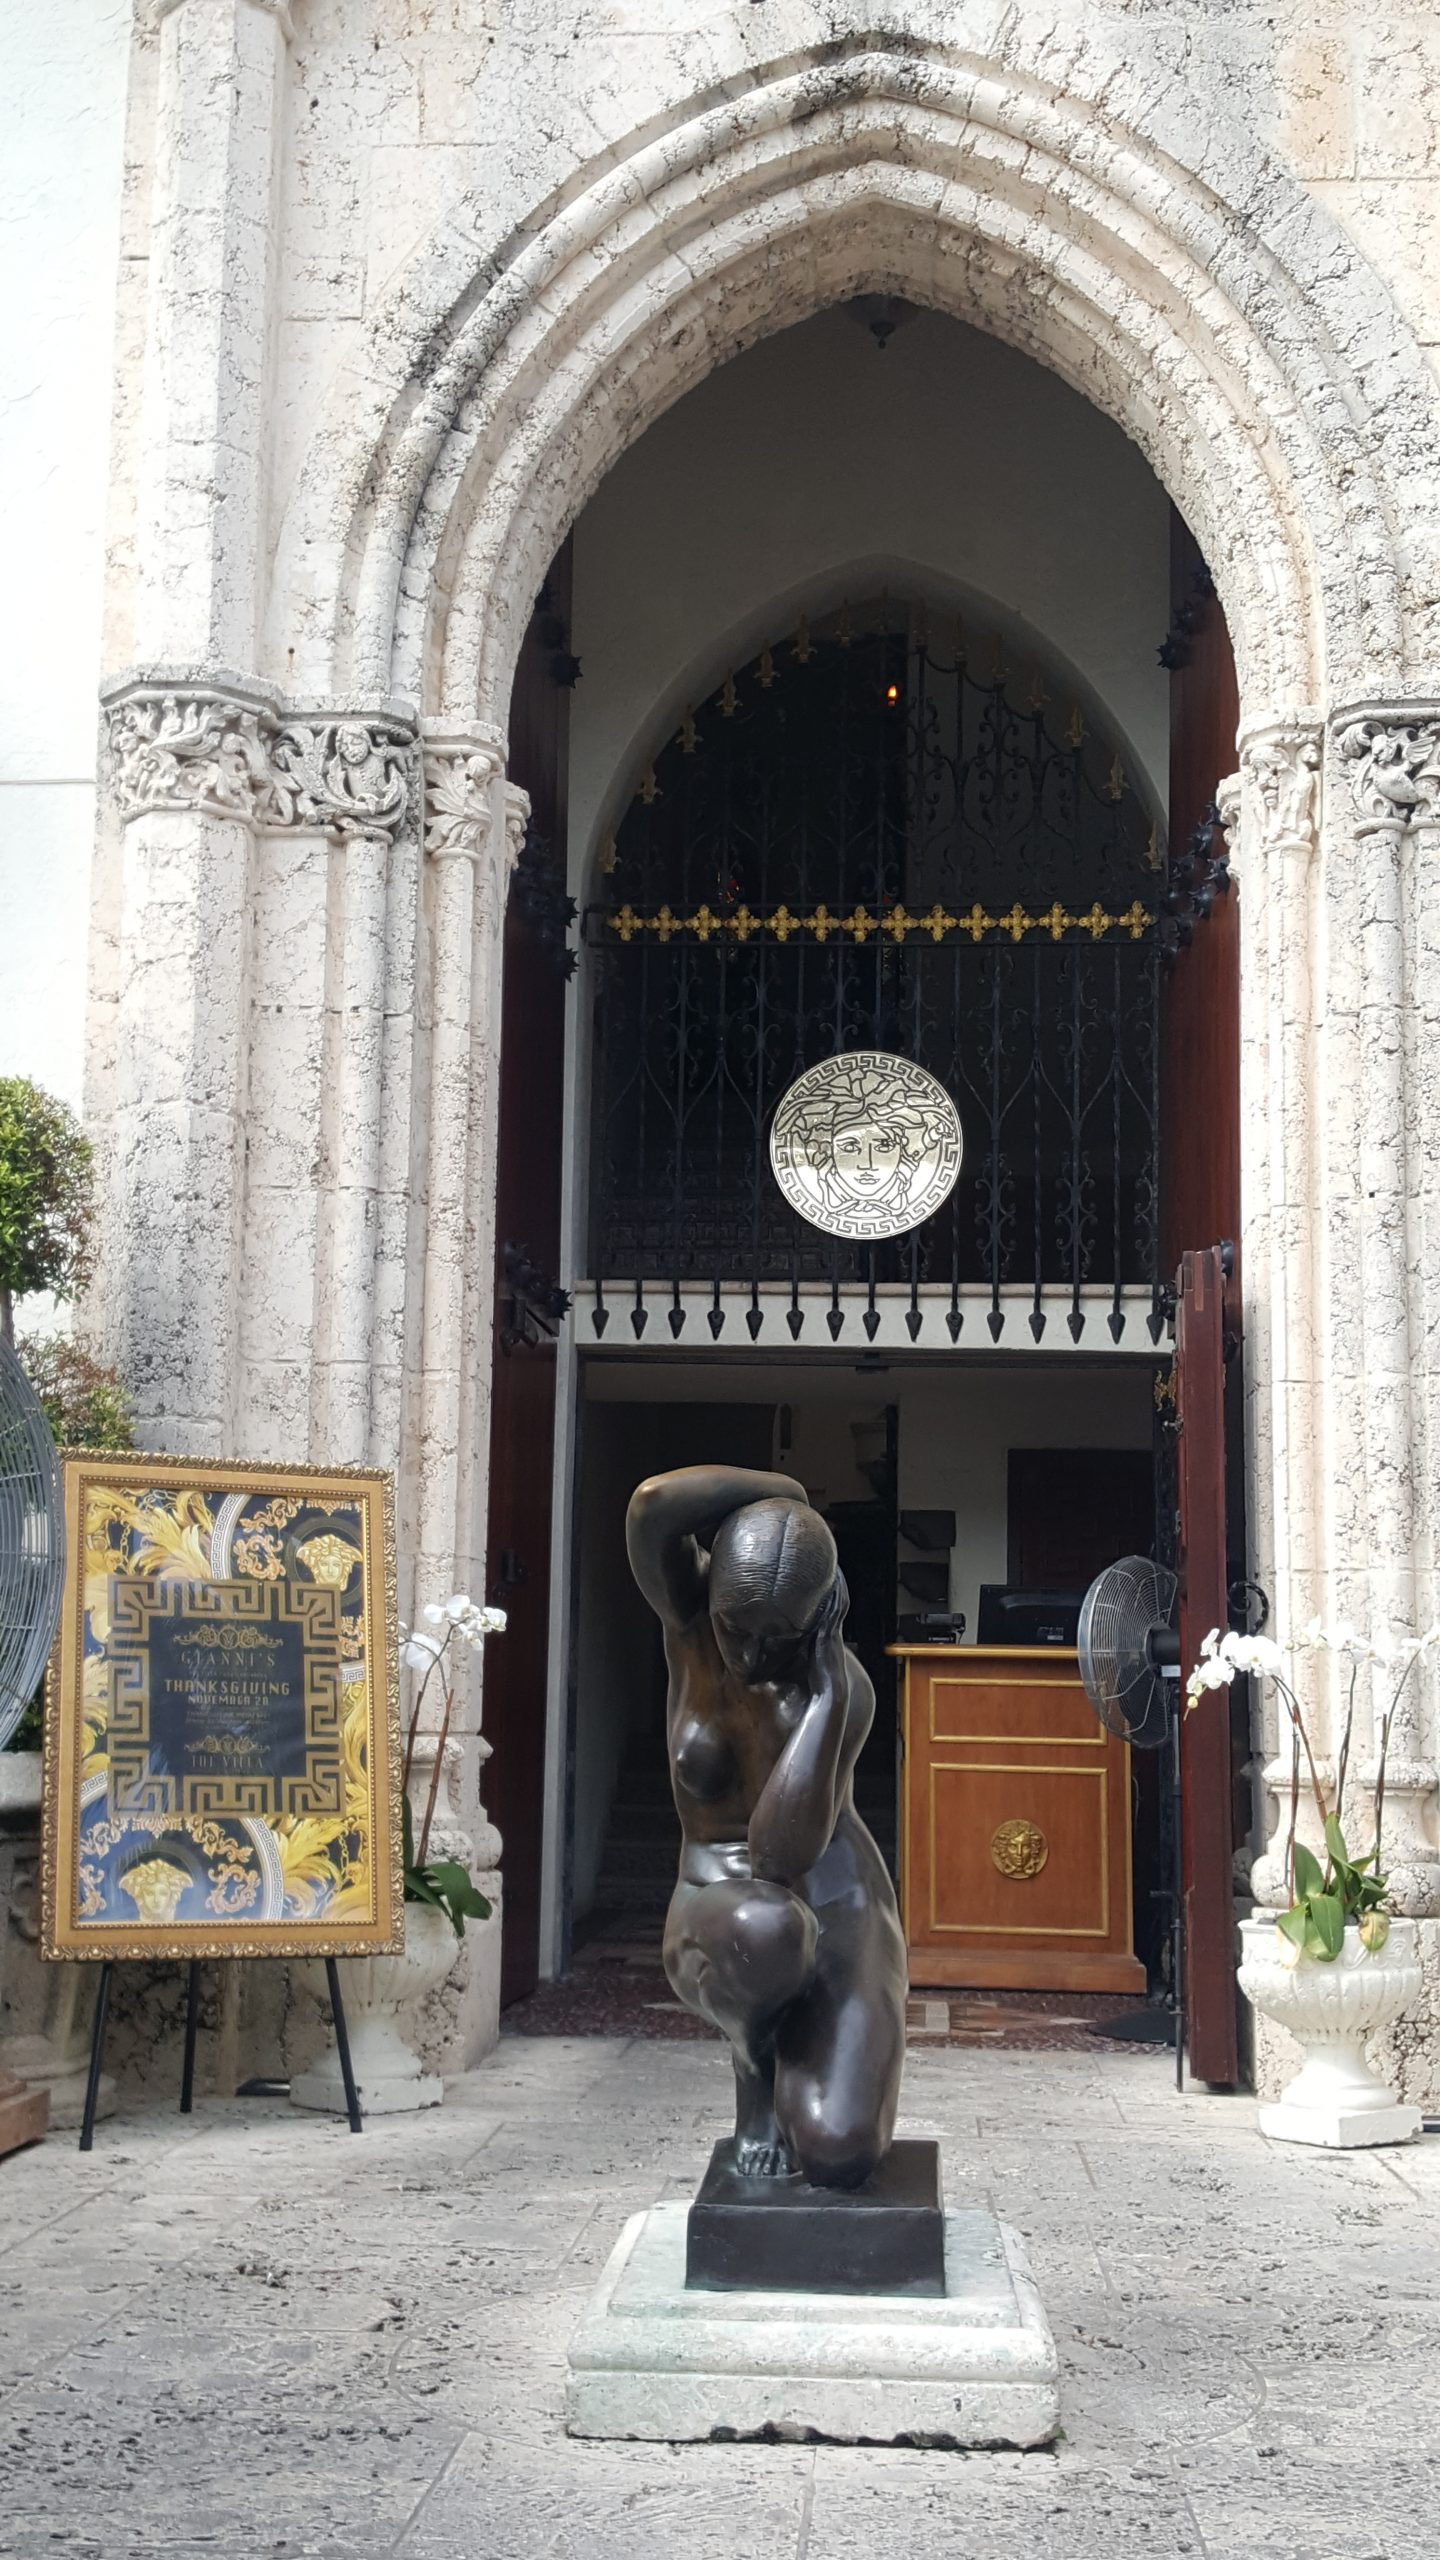 staceessmoothie, photo versace mansion, stacee's smoothie, stacees smoothie, versace, versace mansion, miami, versace miami, versace mansion miami